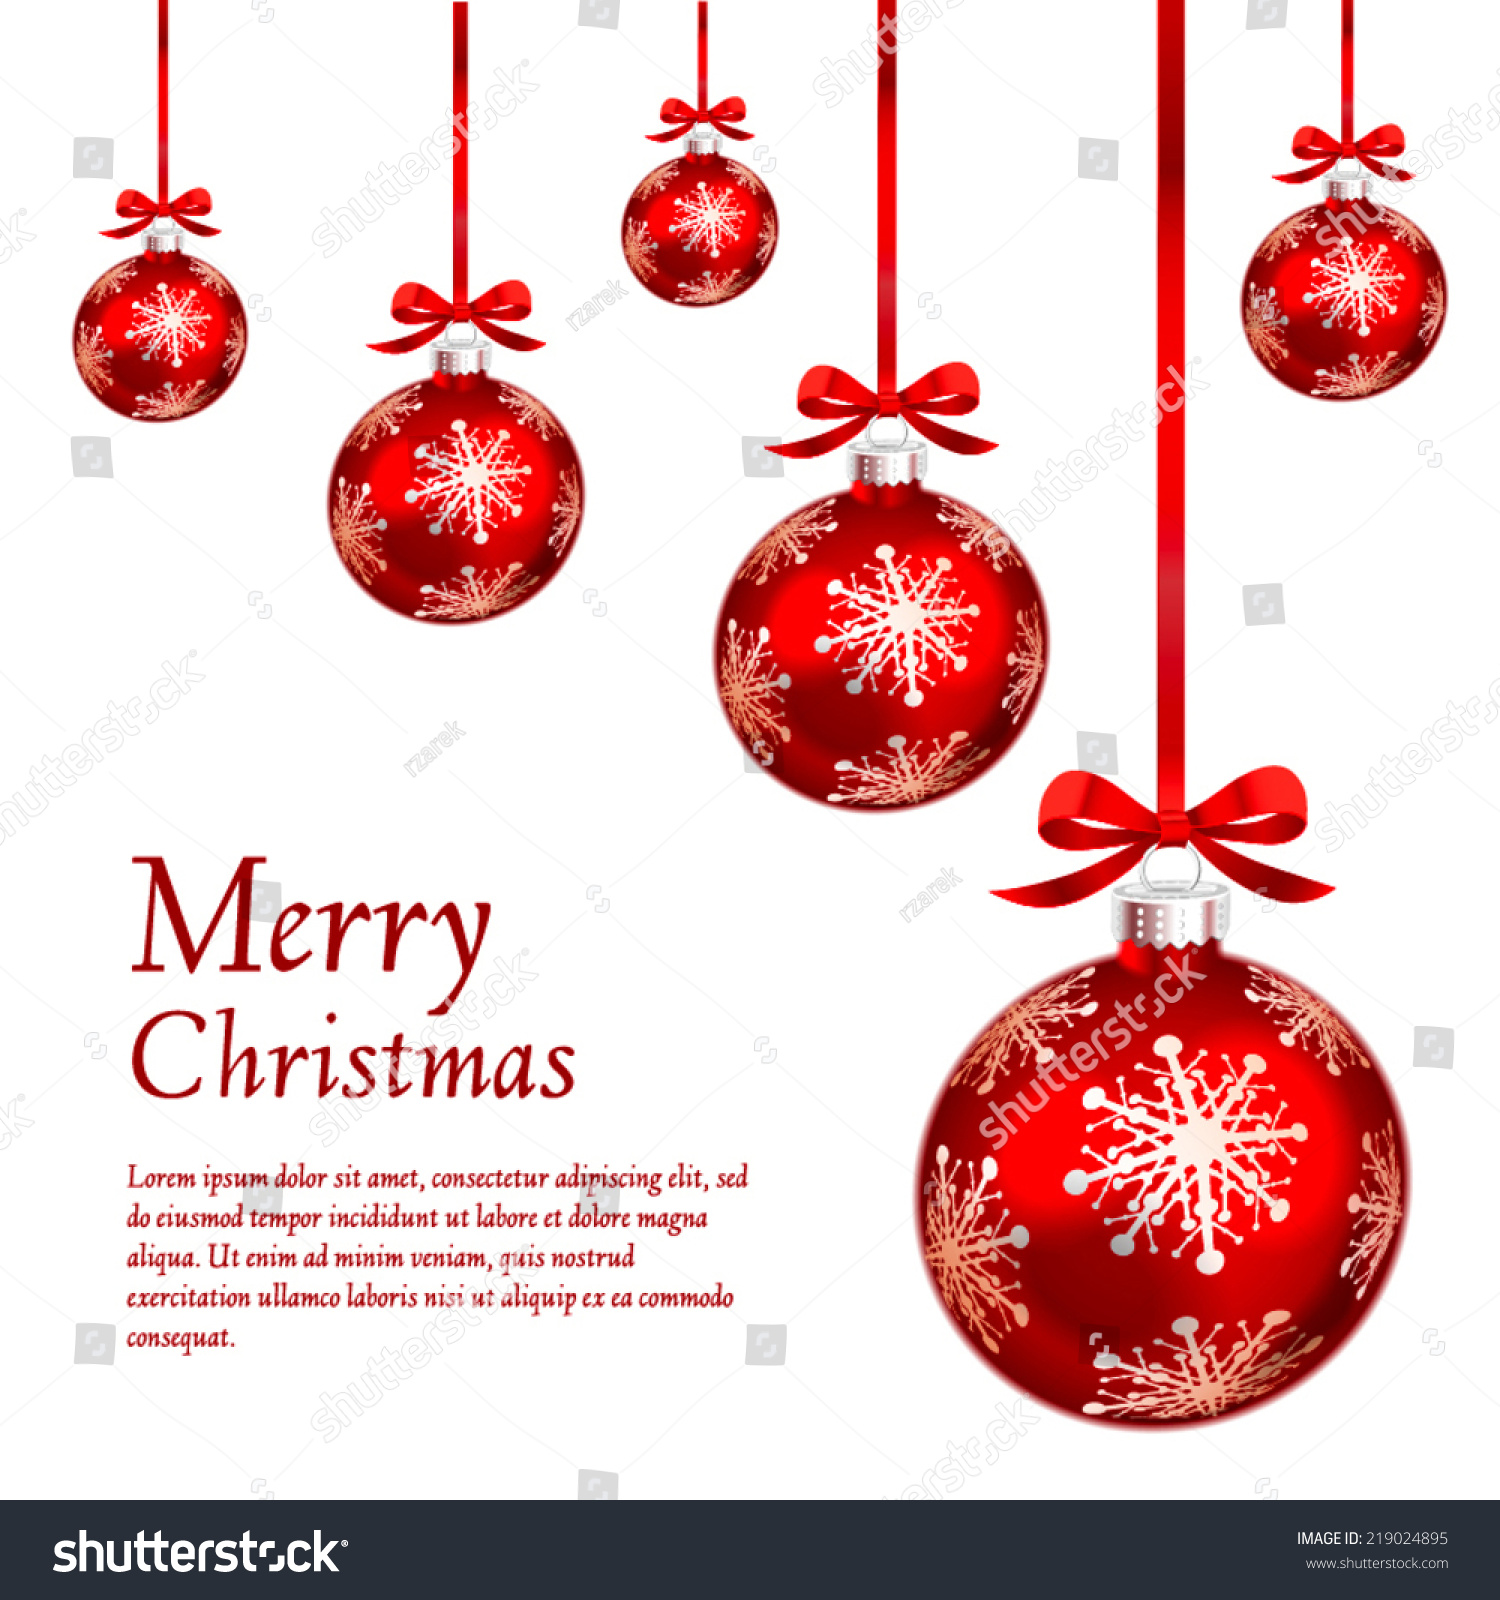 Christmas Ornament Illustration Part - 50: Card With Red Christmas Ornaments. Vector Illustration.